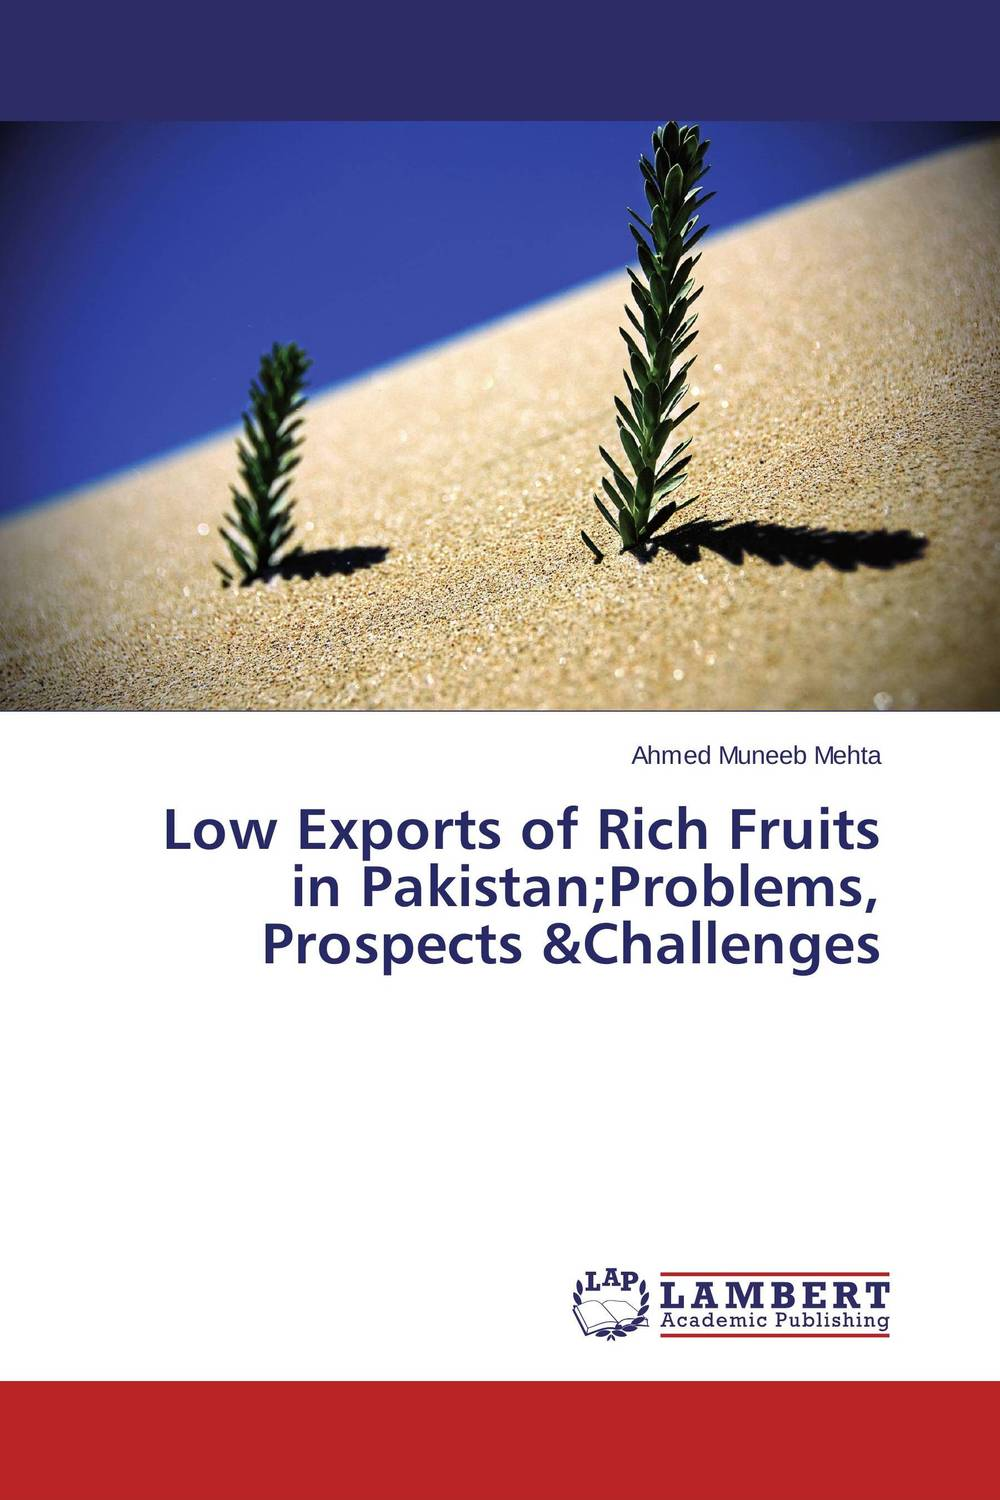 Low Exports of Rich Fruits in Pakistan;Problems, Prospects &Challenges